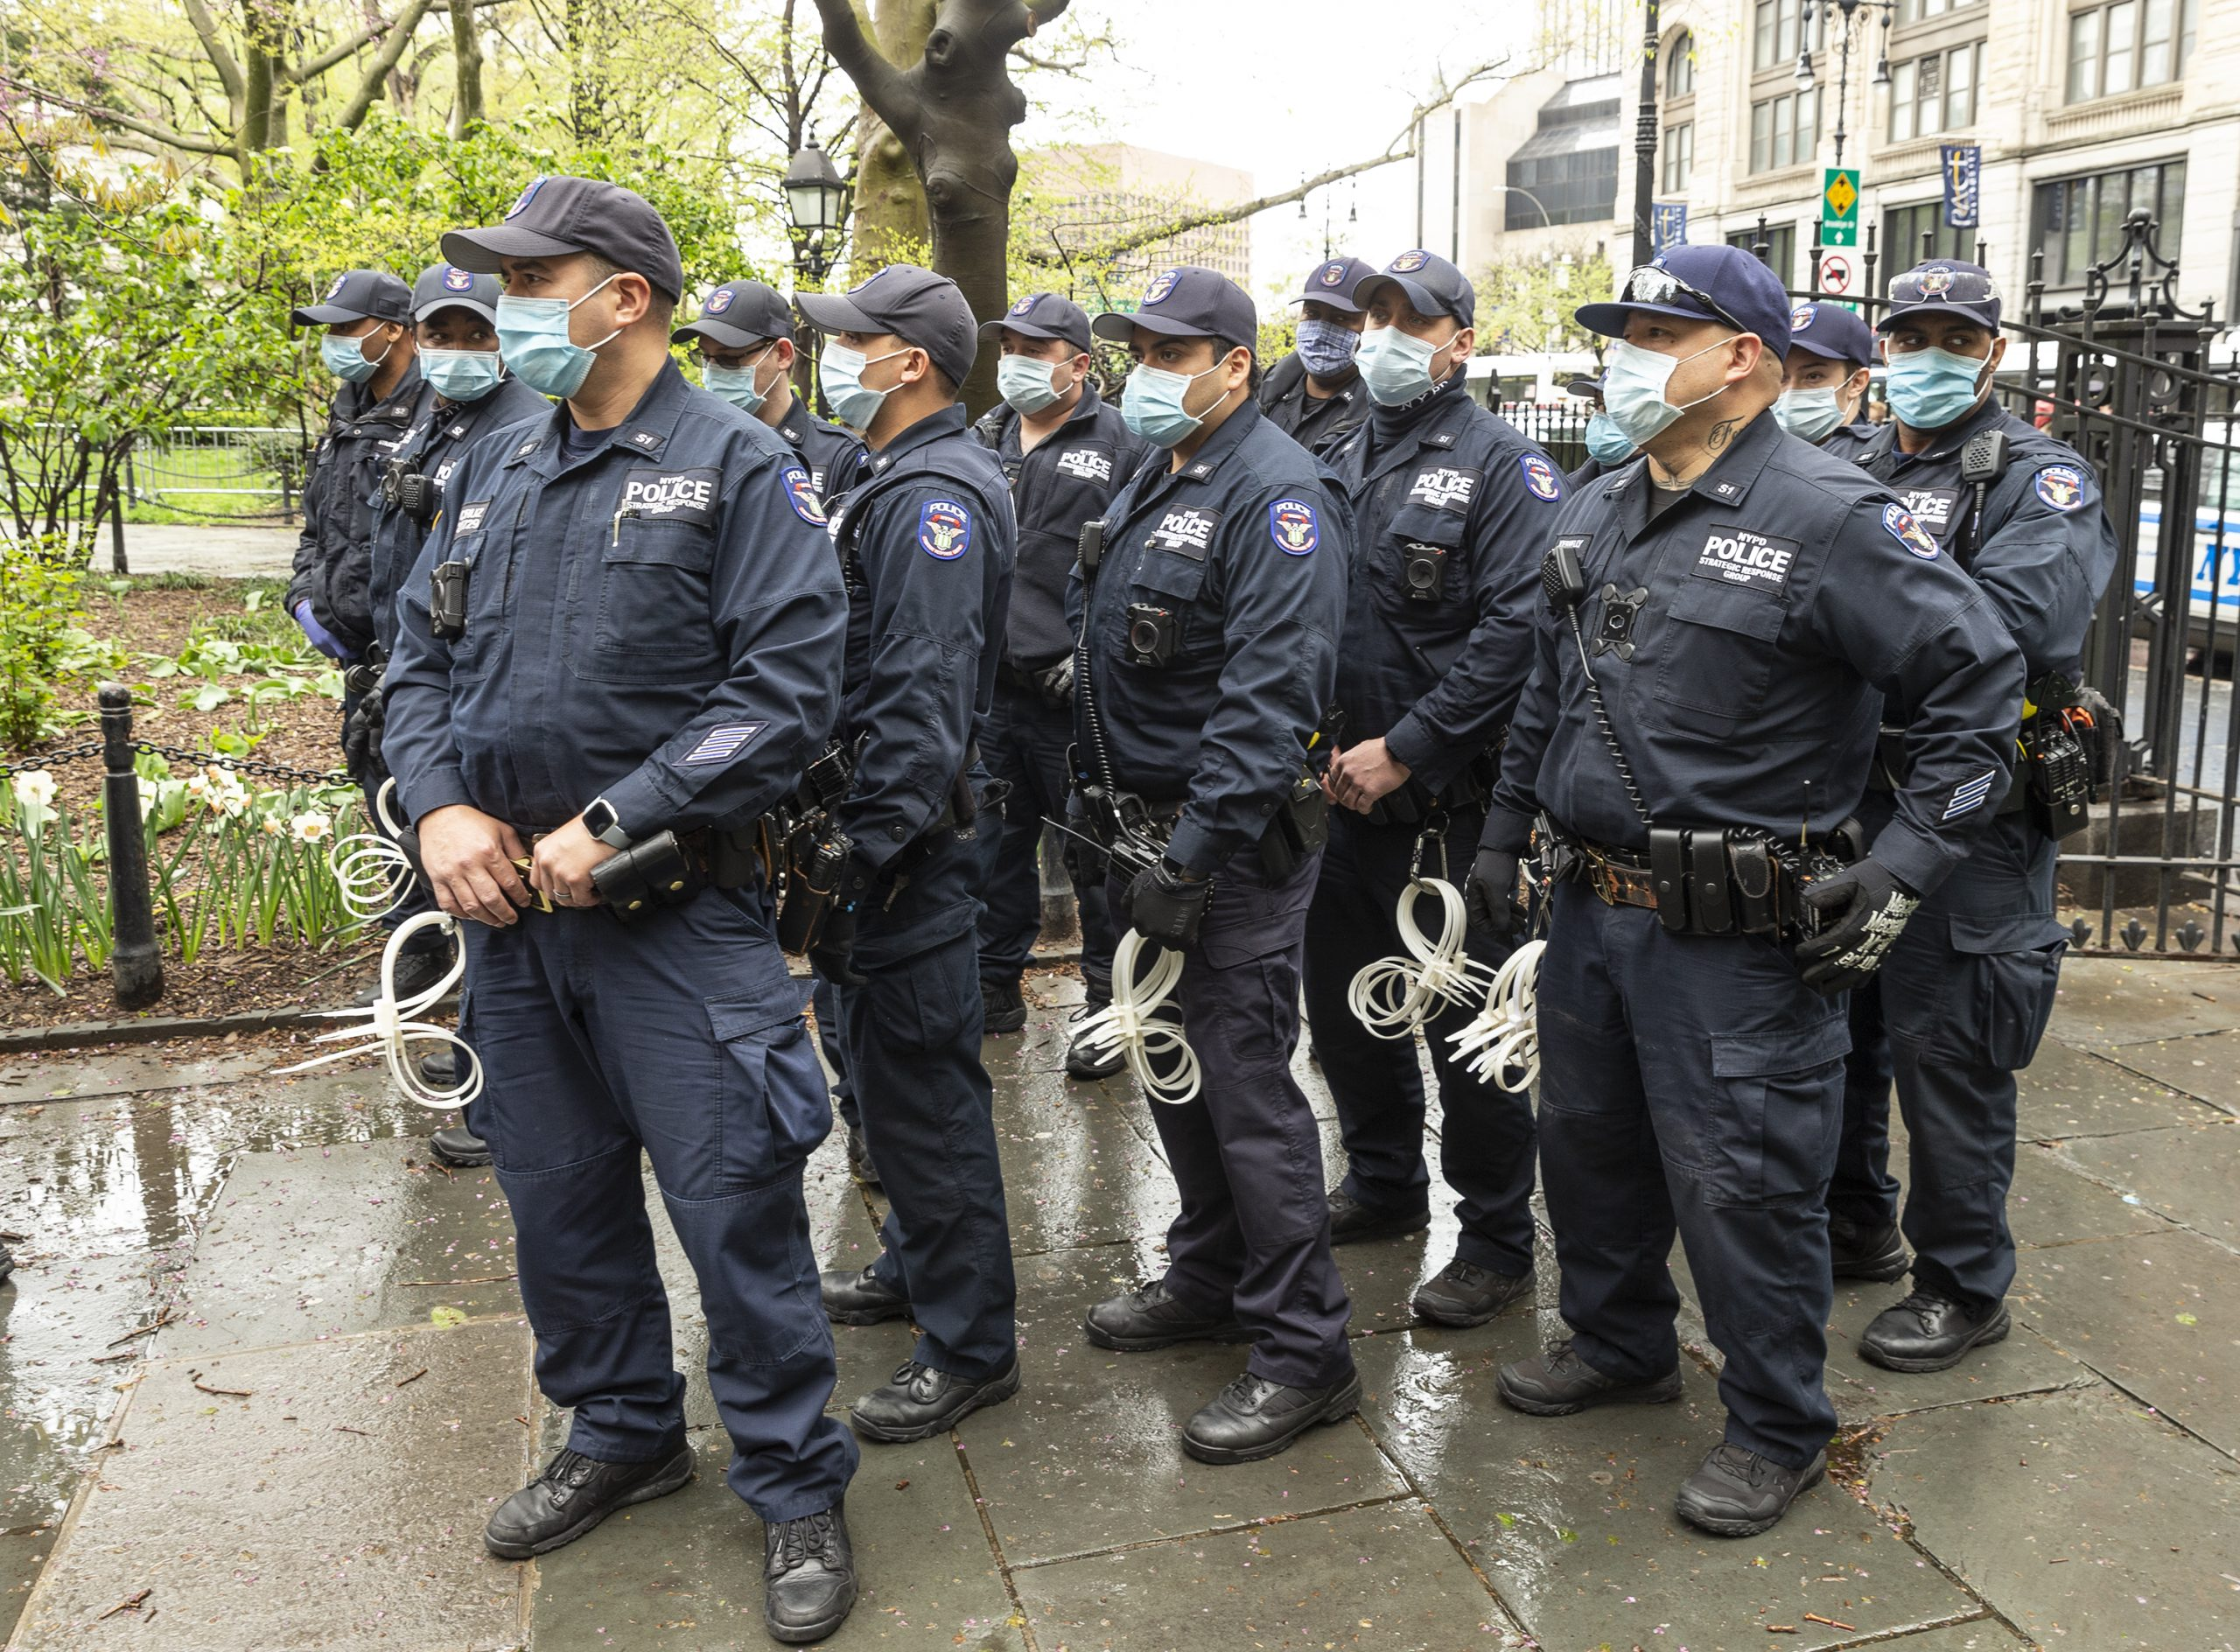 Protesting Police Brutality and racial oppression is an essential work